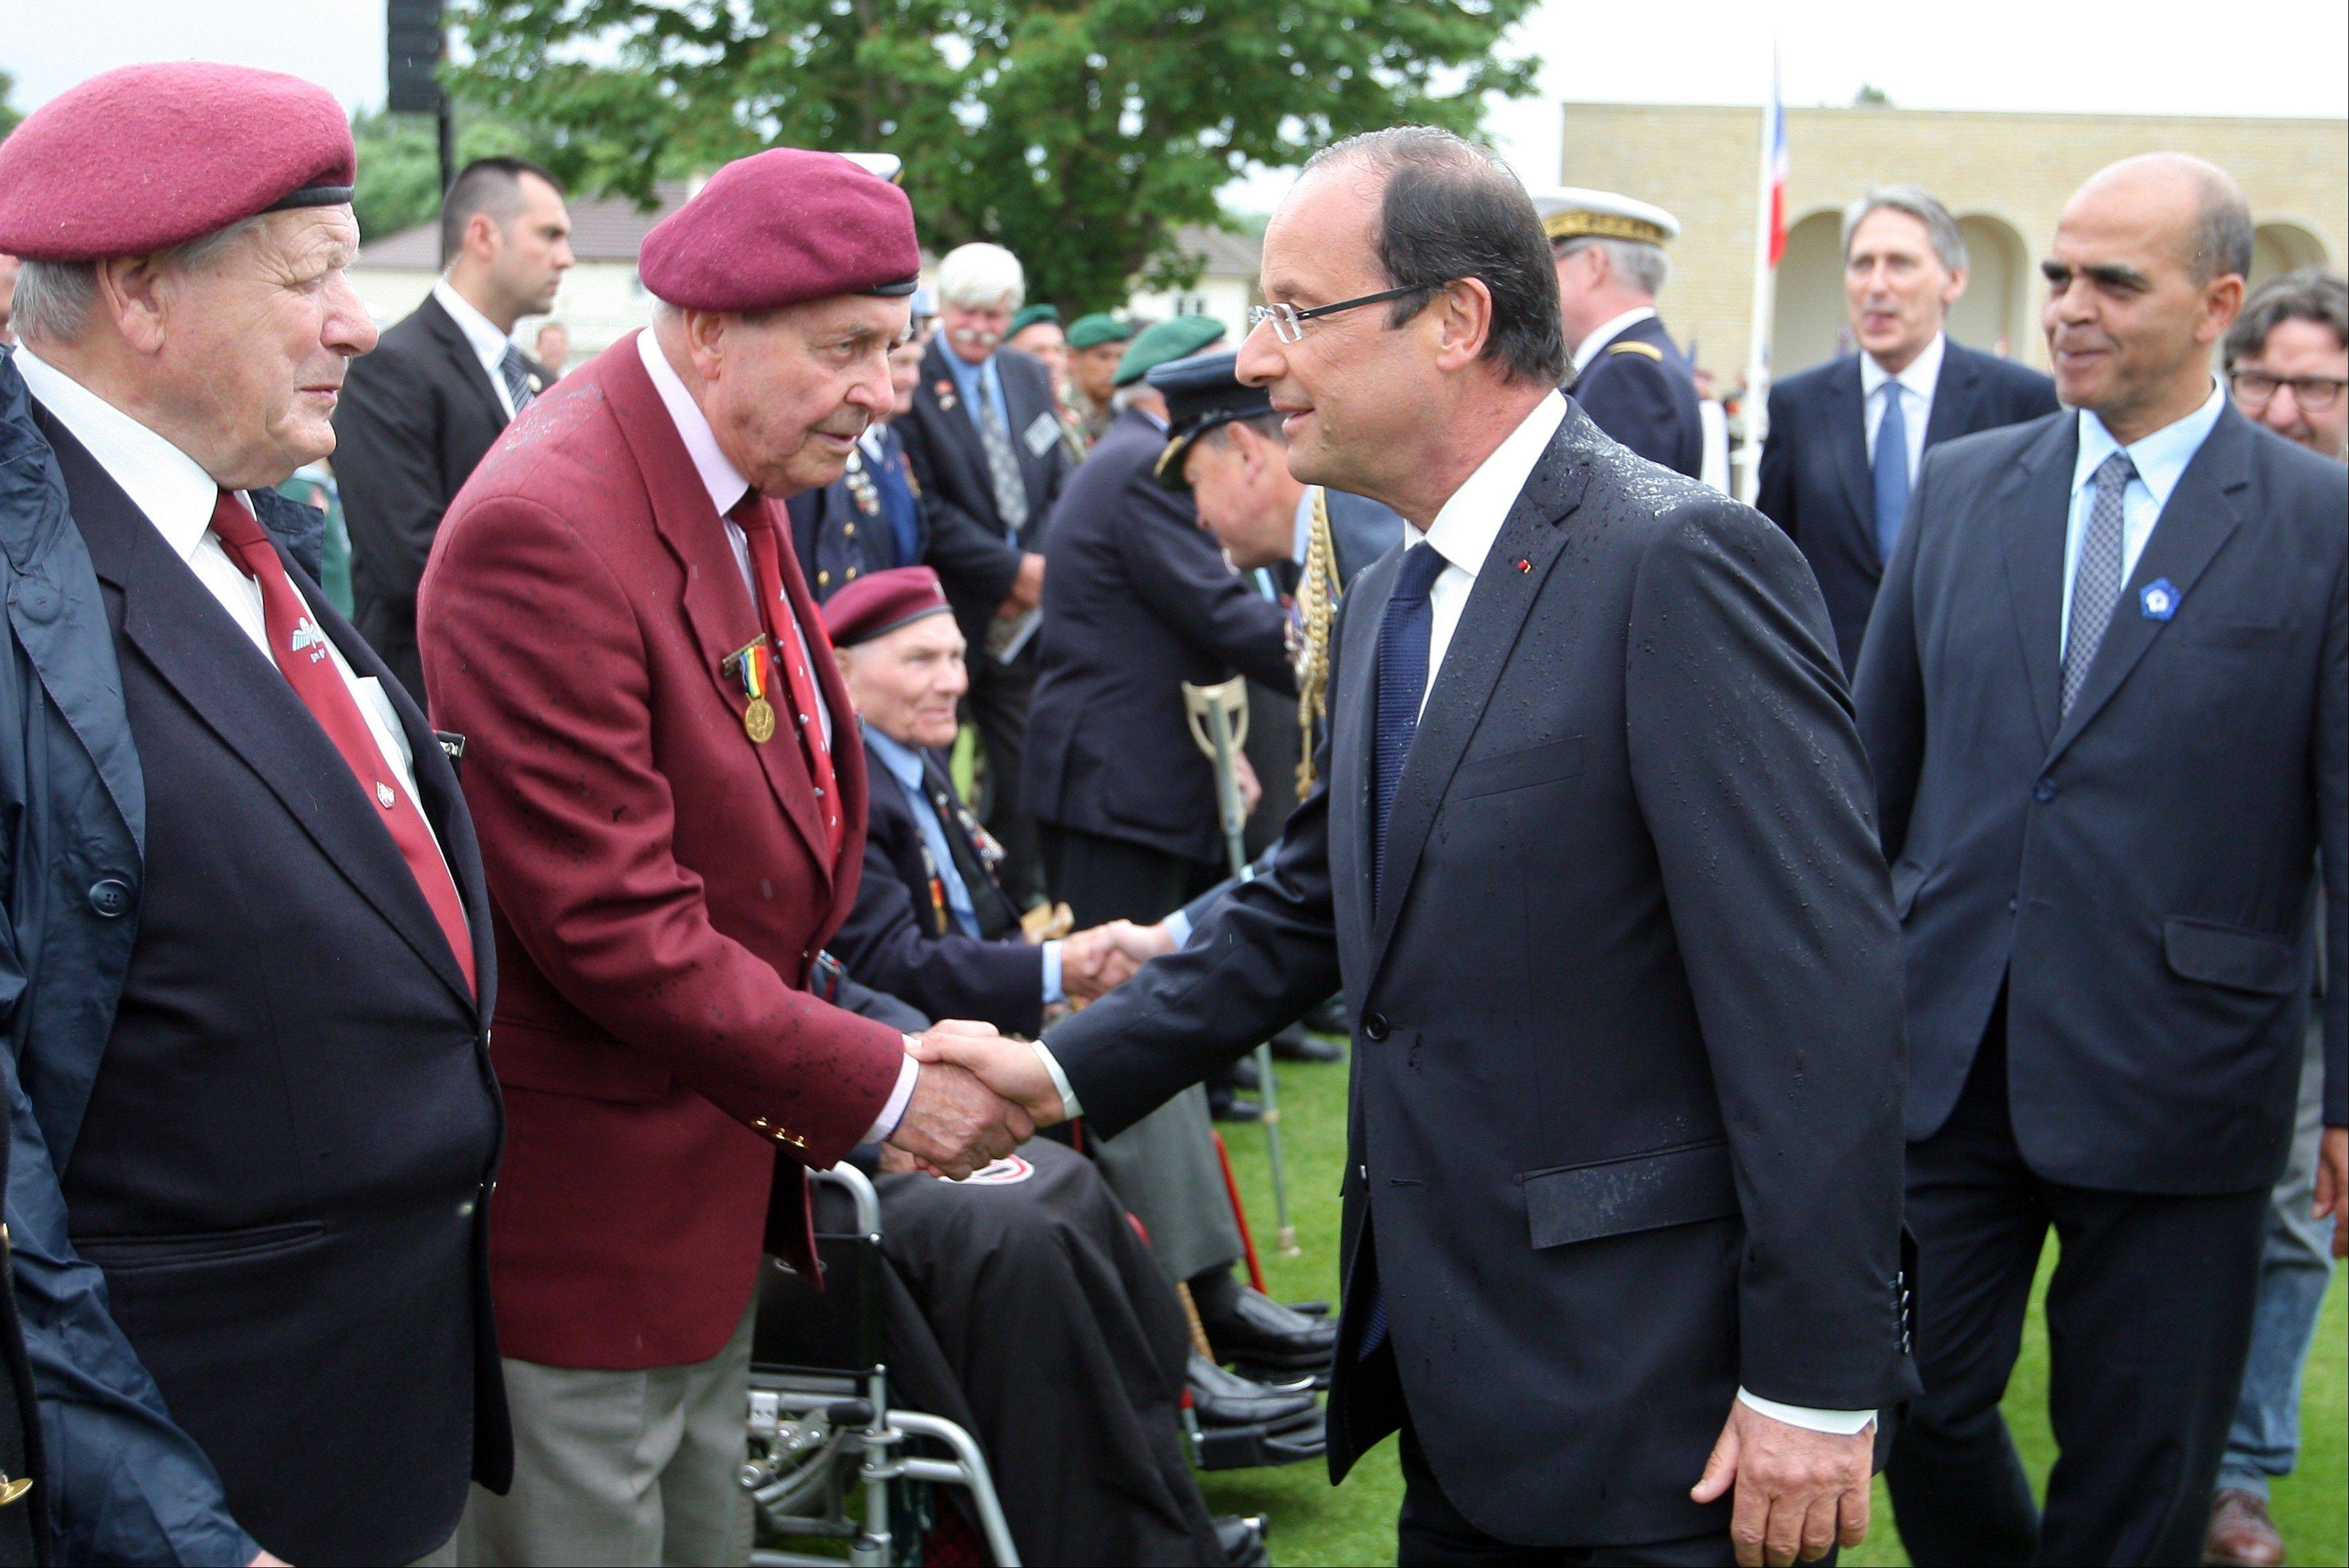 French President Francois Hollande shakes hands with WWII veterans during a ceremony commemorating the 68th anniversary of the D-Day invasion of France began in 1944, in the British war cemetery of Ranville, western France, Wednesday, June 6, 2012.